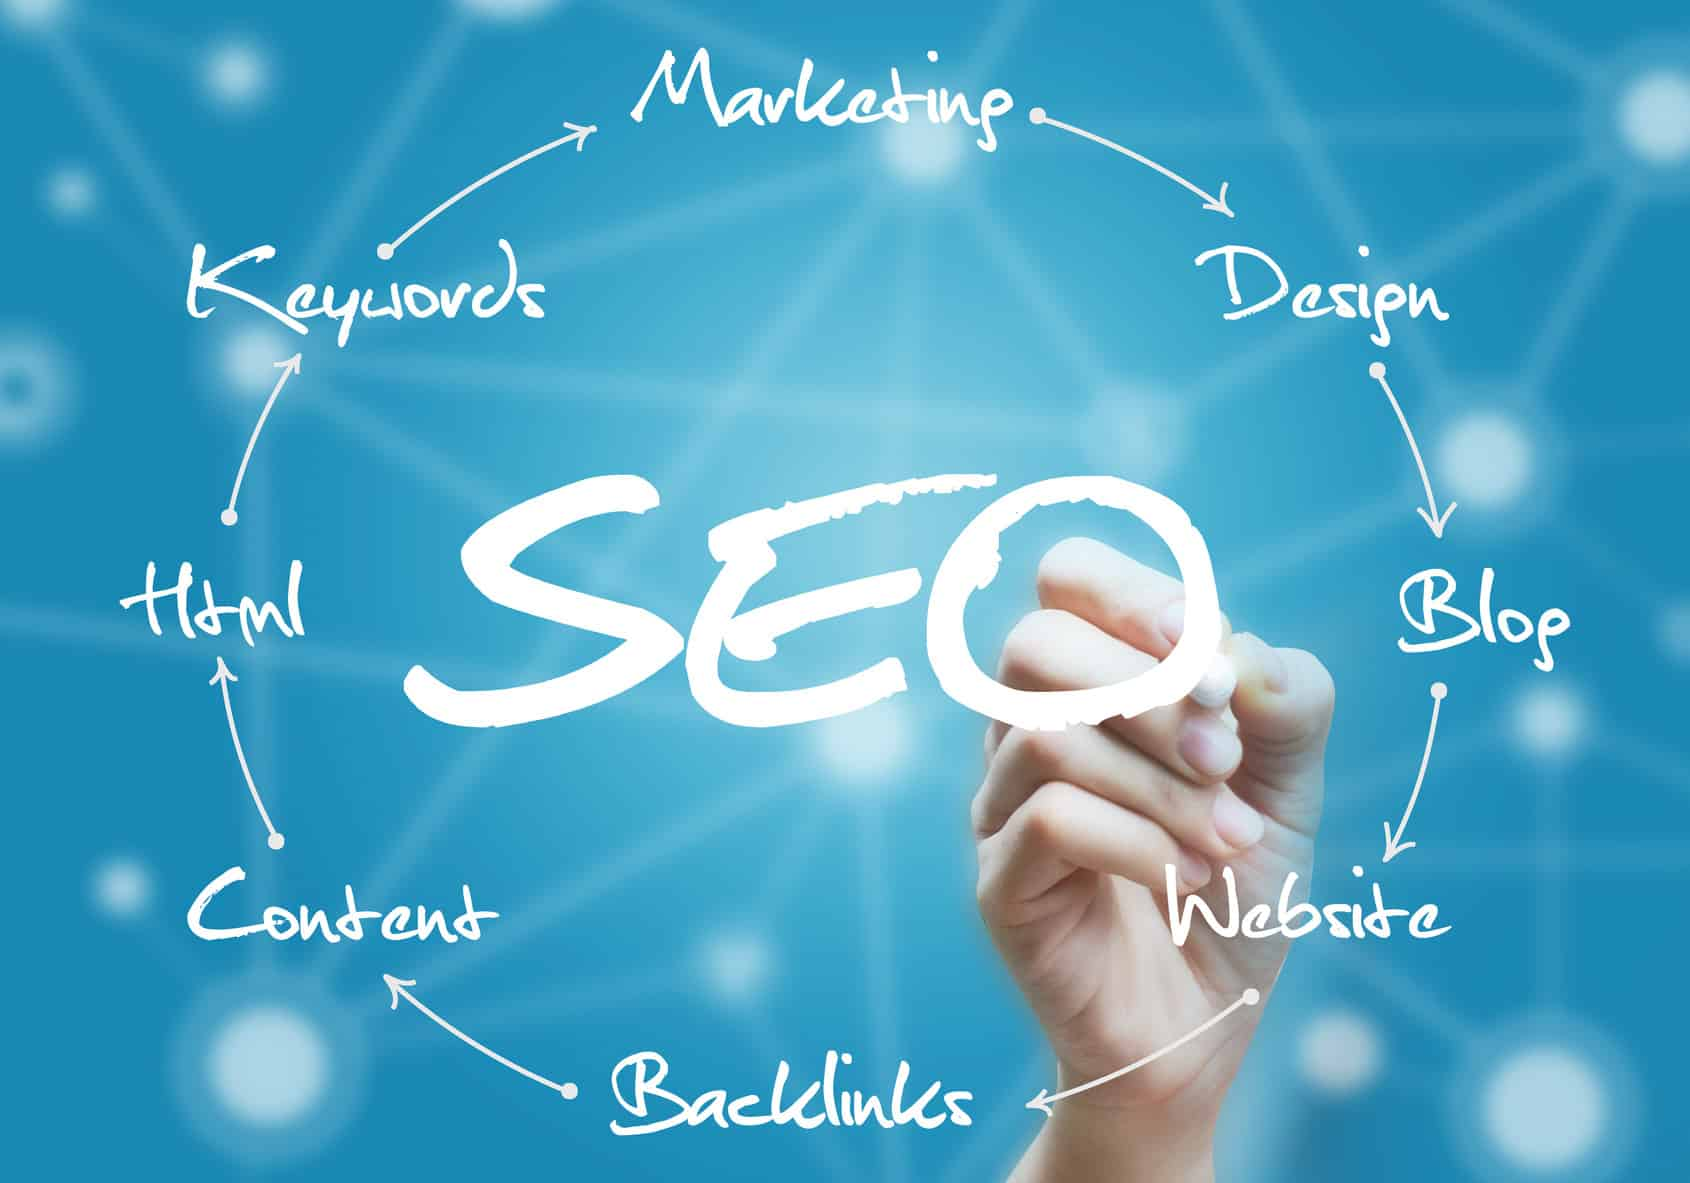 Search Engine Simplified: Our Brand New SEO Toolkit Has You Covered